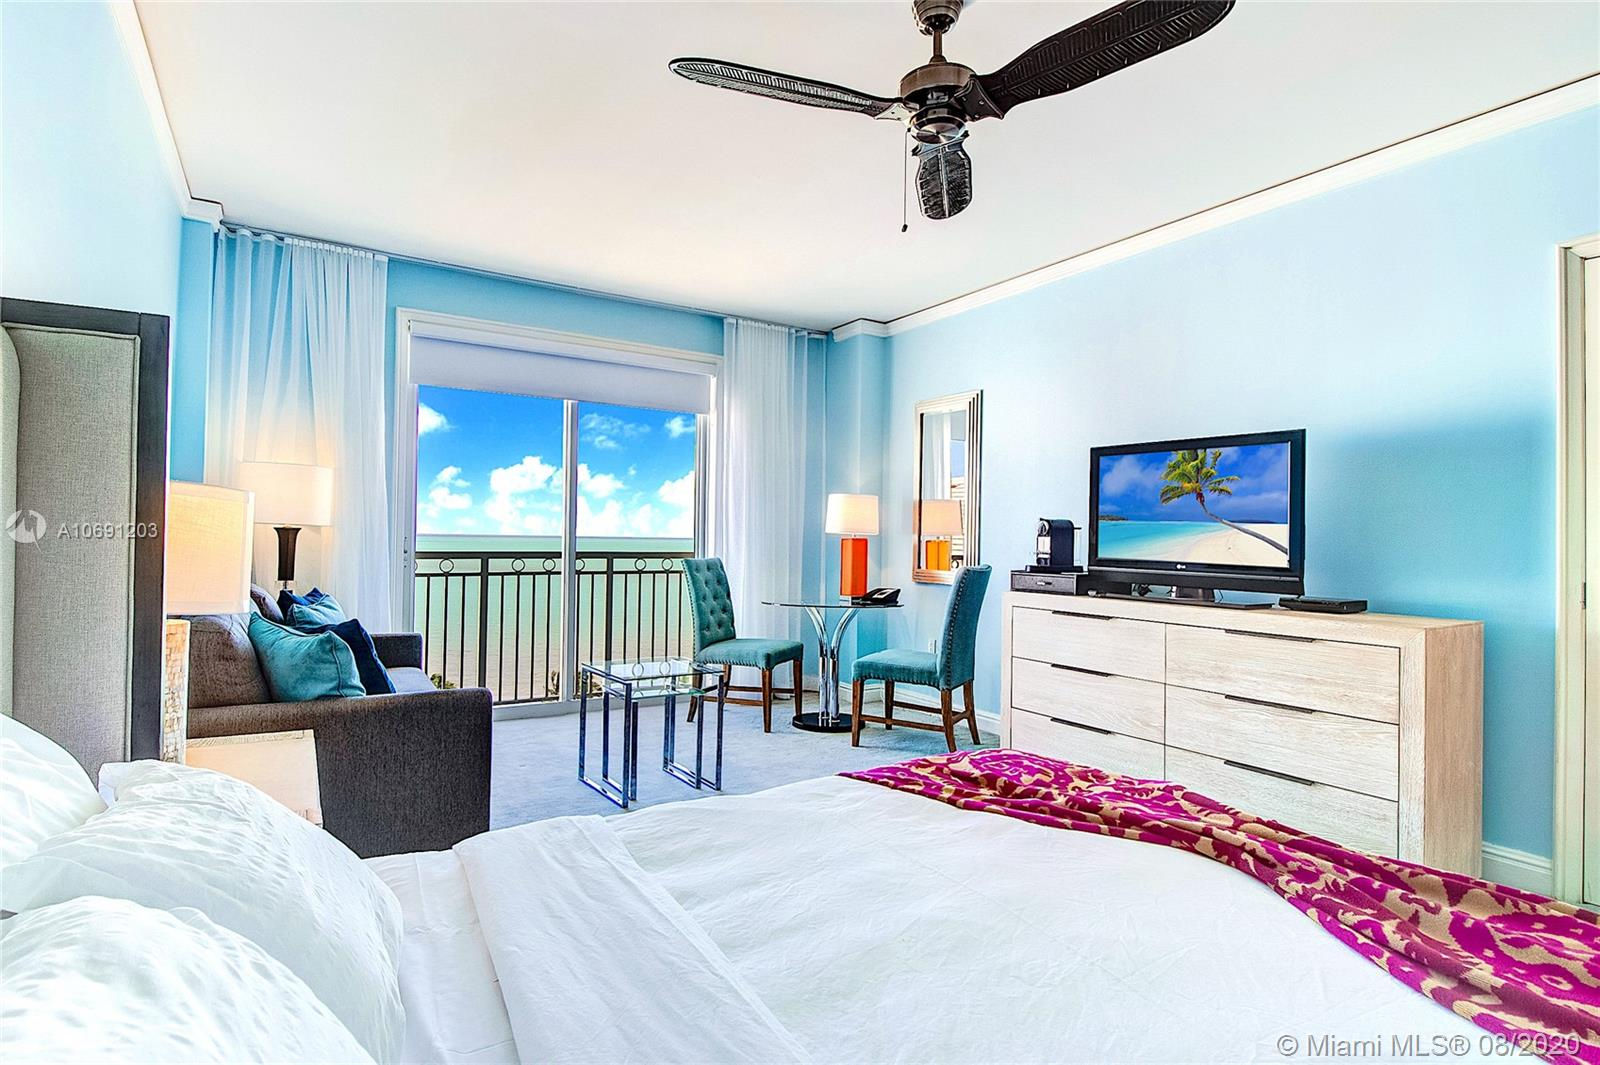 DAILY AND WEEKLY RENTALS!!! PRICES WILL VARY ACCORDING TO THE SEASONS. Apartment with gorgeous direct ocean view from the 10th floor at the luxurious Ritz Carlton 5-STAR Resort and Spa. Reserving this apartment will guarantee you a 5star treatment. You will be treated as a regular guest and have access to all amenities. Luxurious spa & fitness center, 2 oceanfront pools, restaurants, tennis courts, private beach, kids room. 1 PRIVATE PARKING SPACE COMES WITH THE UNIT! 1 king bed, 1 queen pull out sofa-bed with memory foam mattress, 1 bath, kitchenette, TV, balcony. We have 5 units in the hotel, give our office a call for availability! January:$310February:$310March:$340April:$340May:$220June:$300July:$300August:$310September:$165October:$180November:$320December:$420